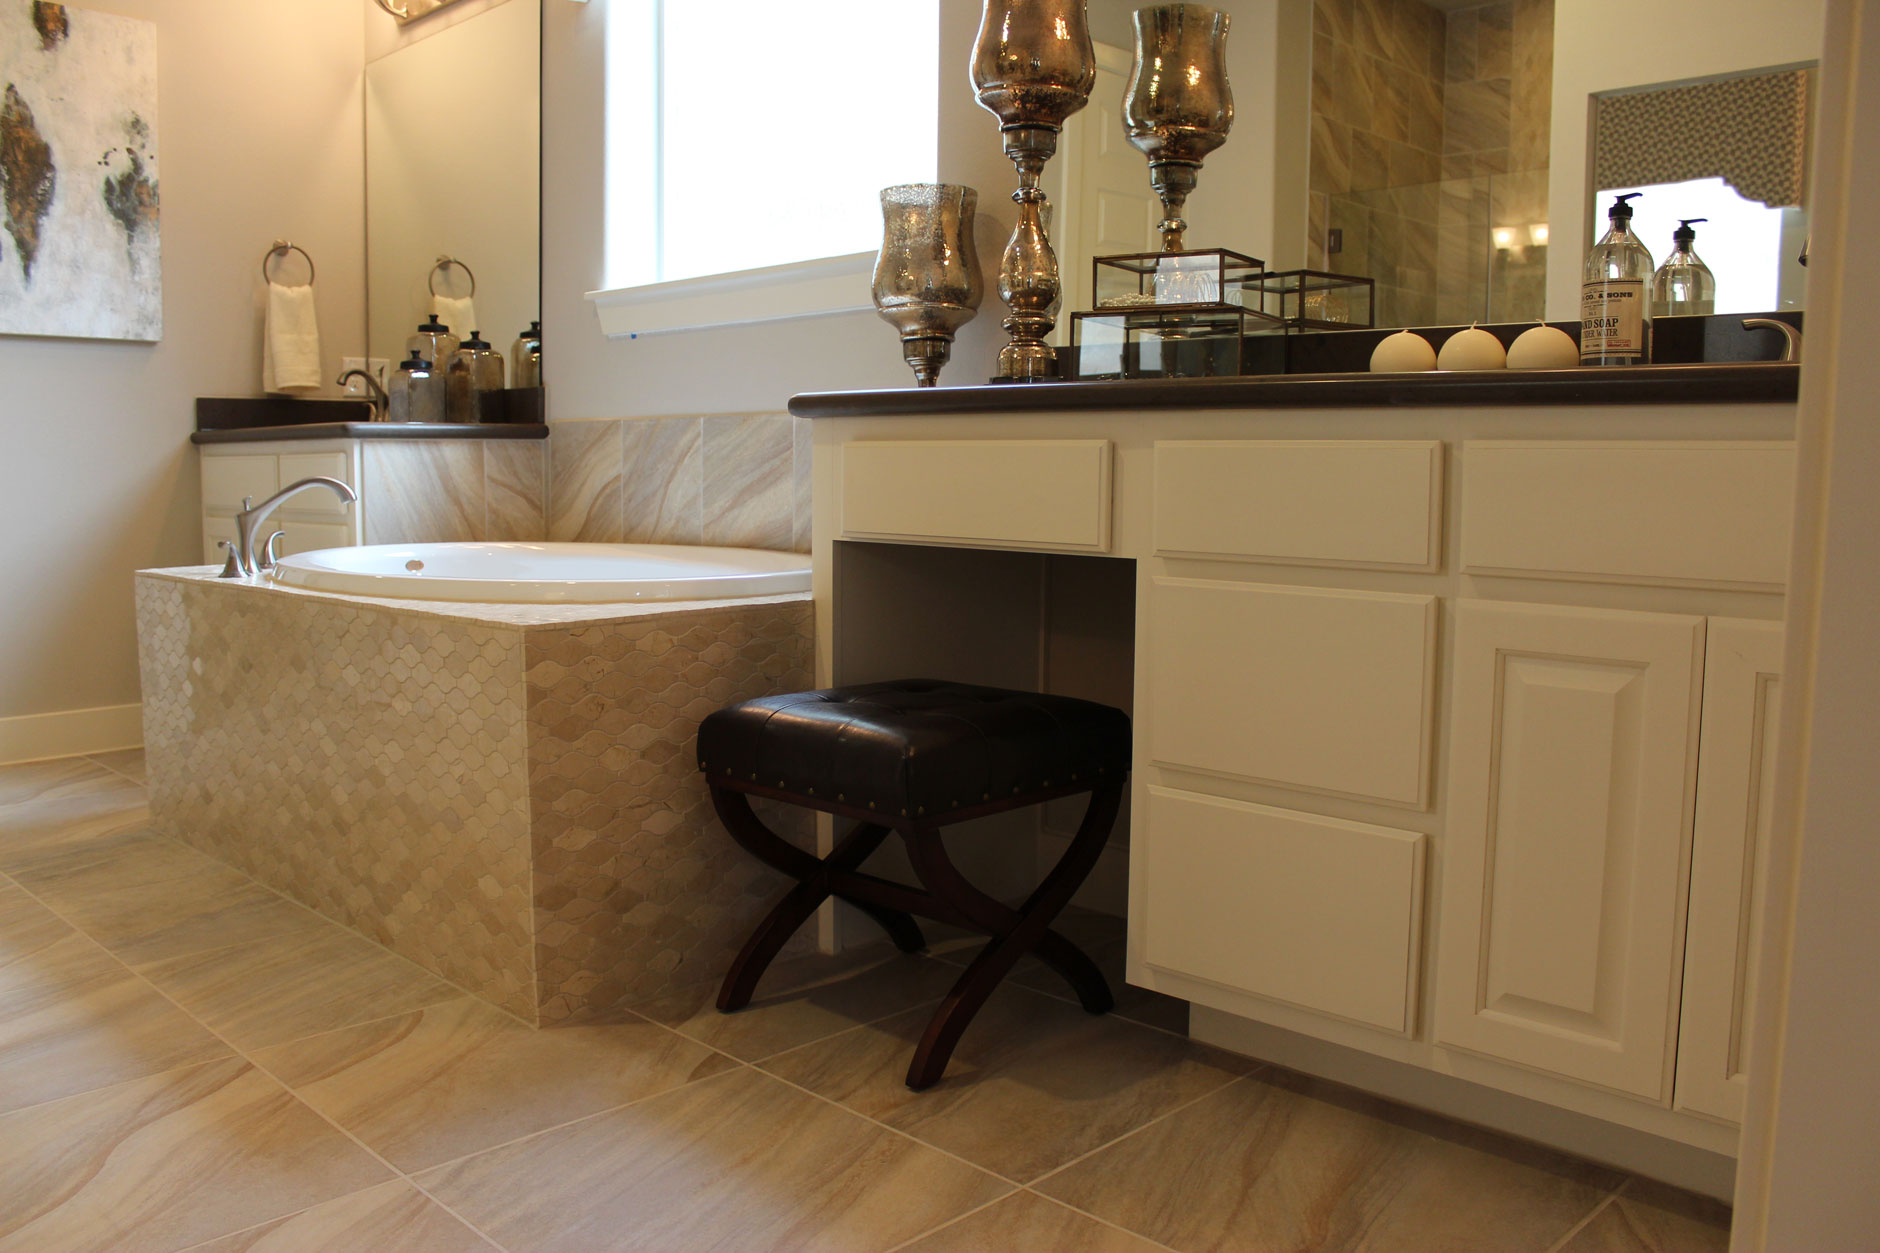 Master Bath cabinets in Bone by Burrows Cabinets